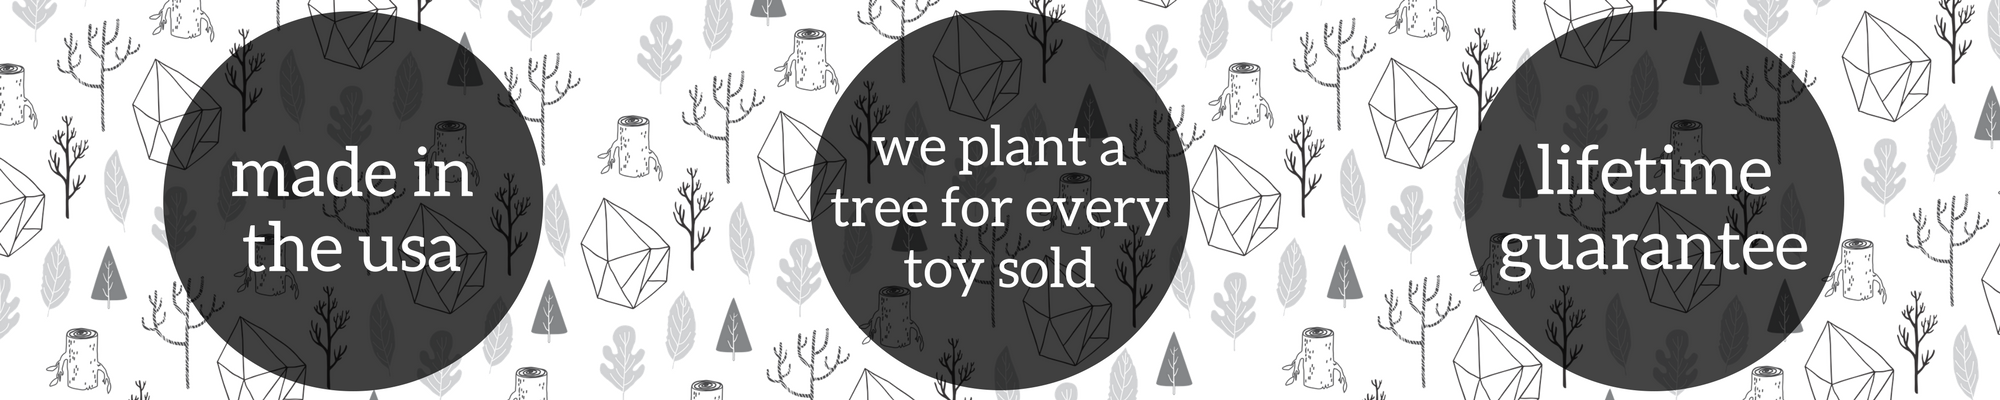 made in the usa, lifetime guarantee, plant a tree for every toy sold